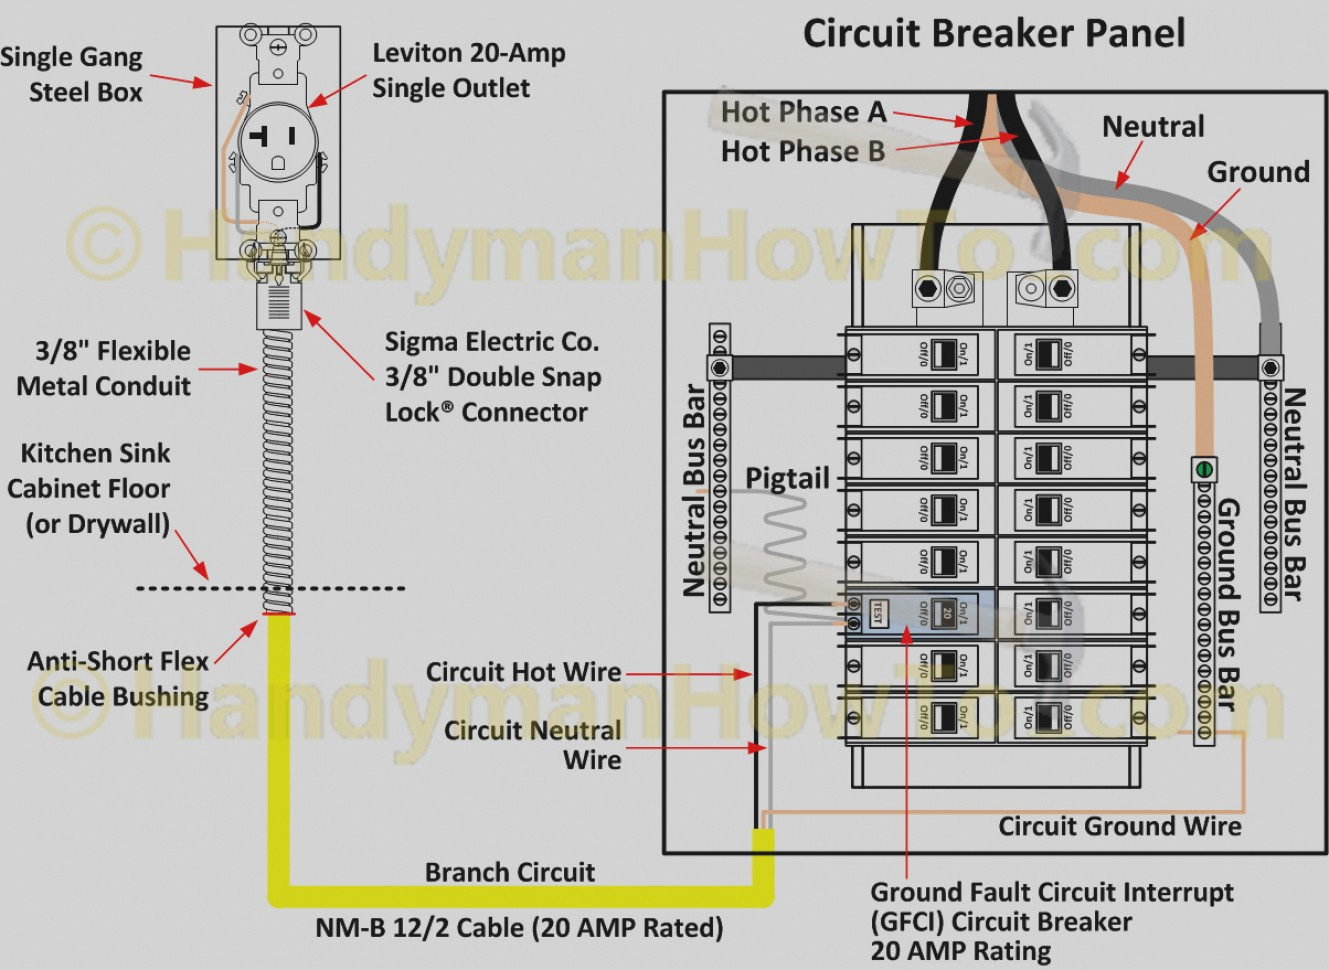 Circuit Breaker Panel Wiring Diagram Unique Image Home Best Pdf Diagrams Schematics